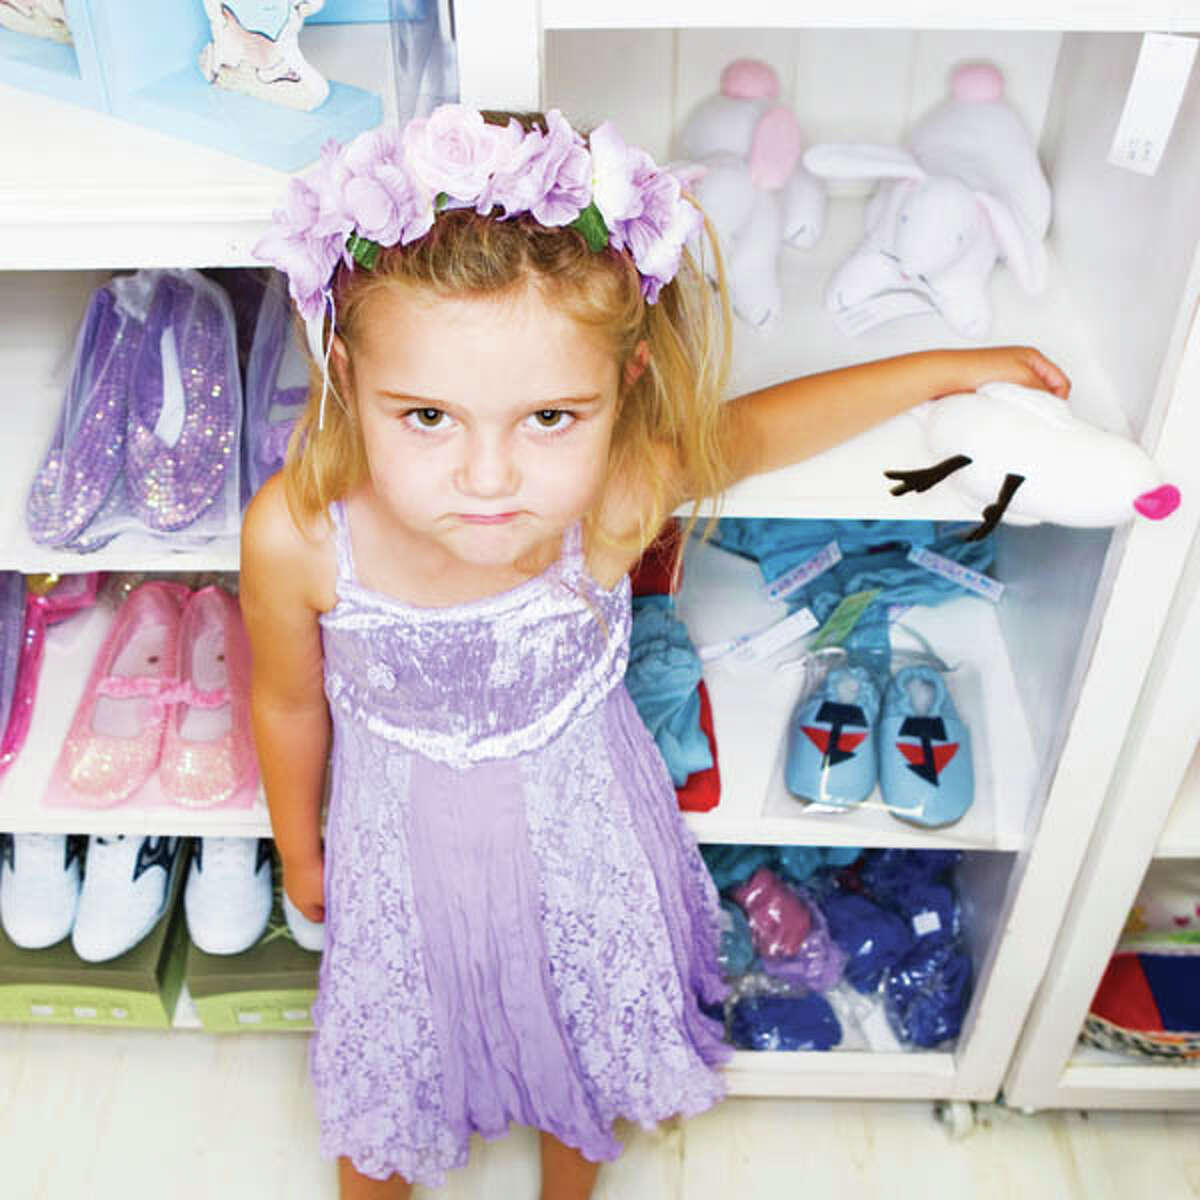 Dressed up Girl Standing at Shelf